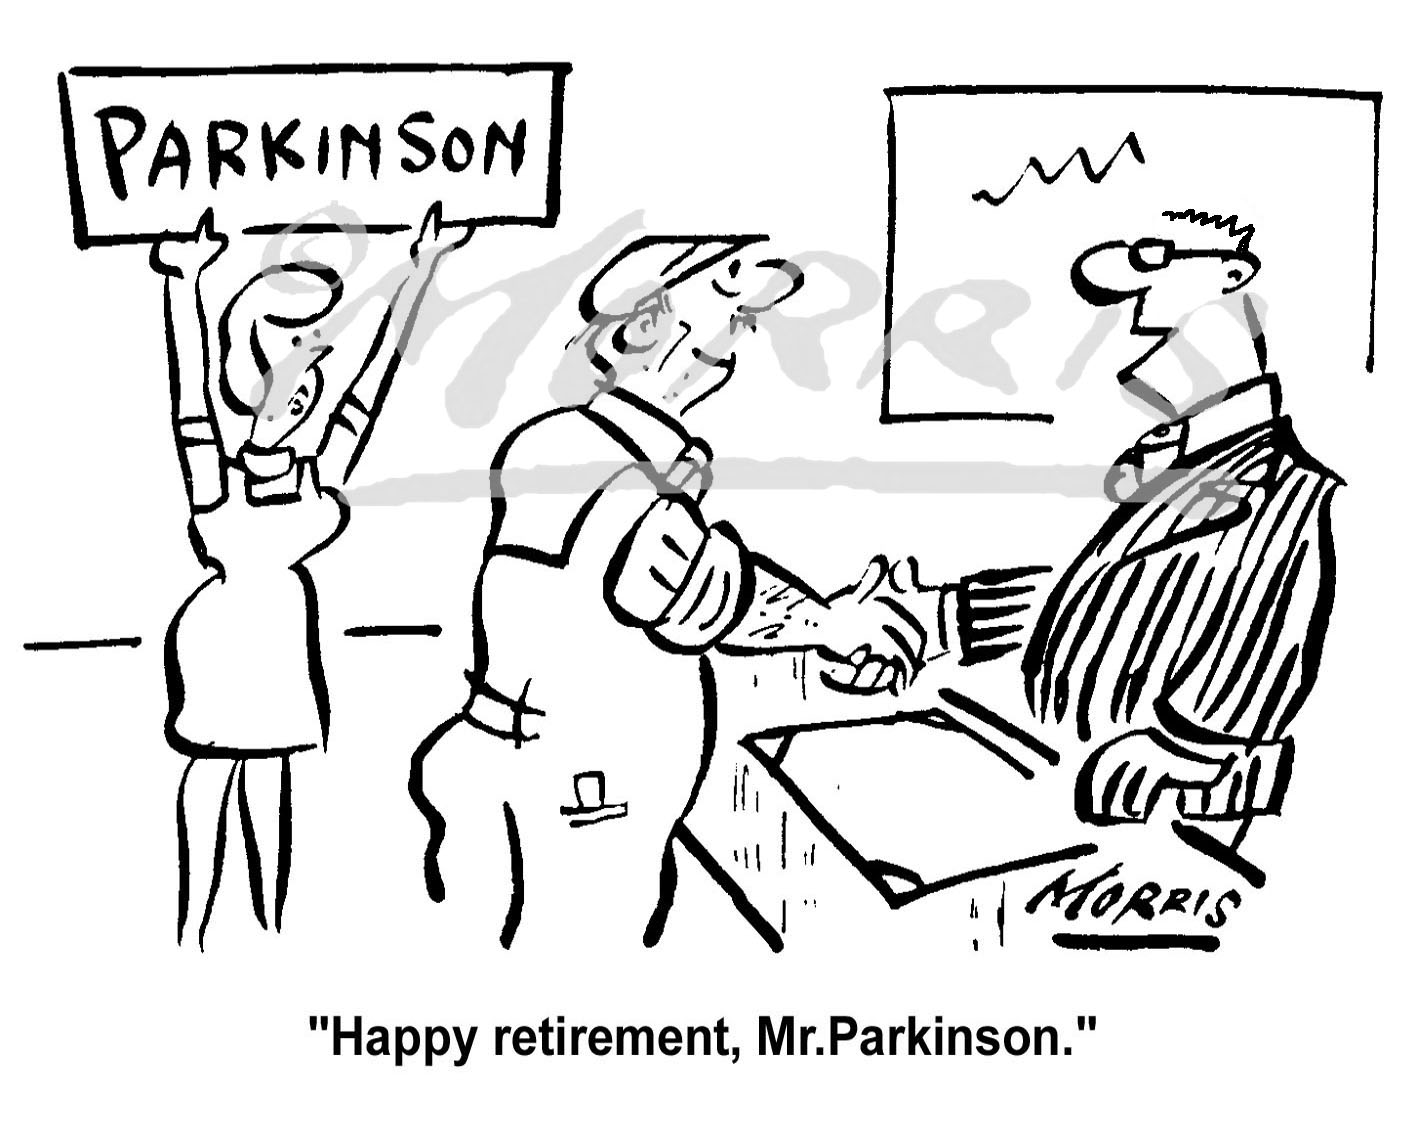 Shopfloor worker retirement presentation cartoon Ref: 0297bw